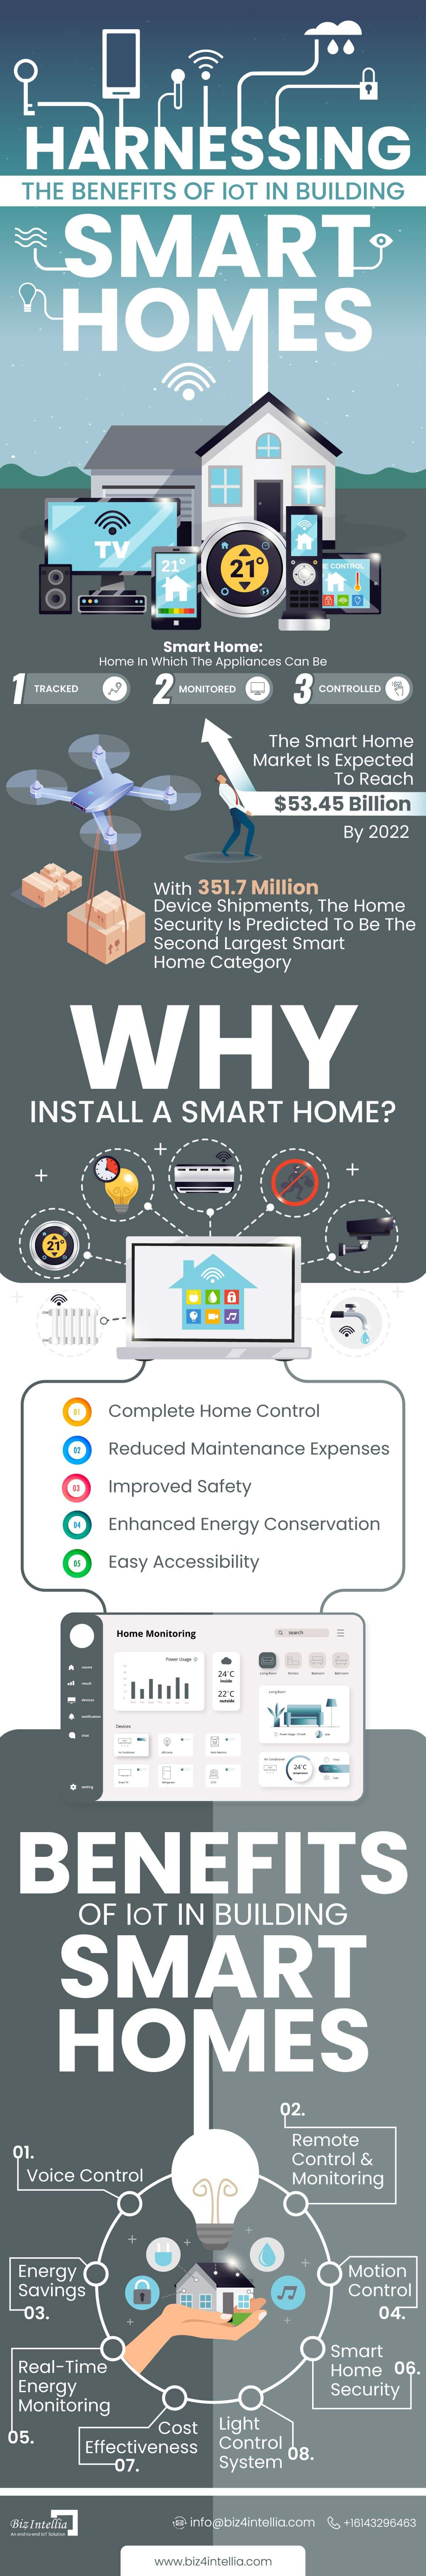 harnessing-the-benefits-of-iot-in-building-smart-homes